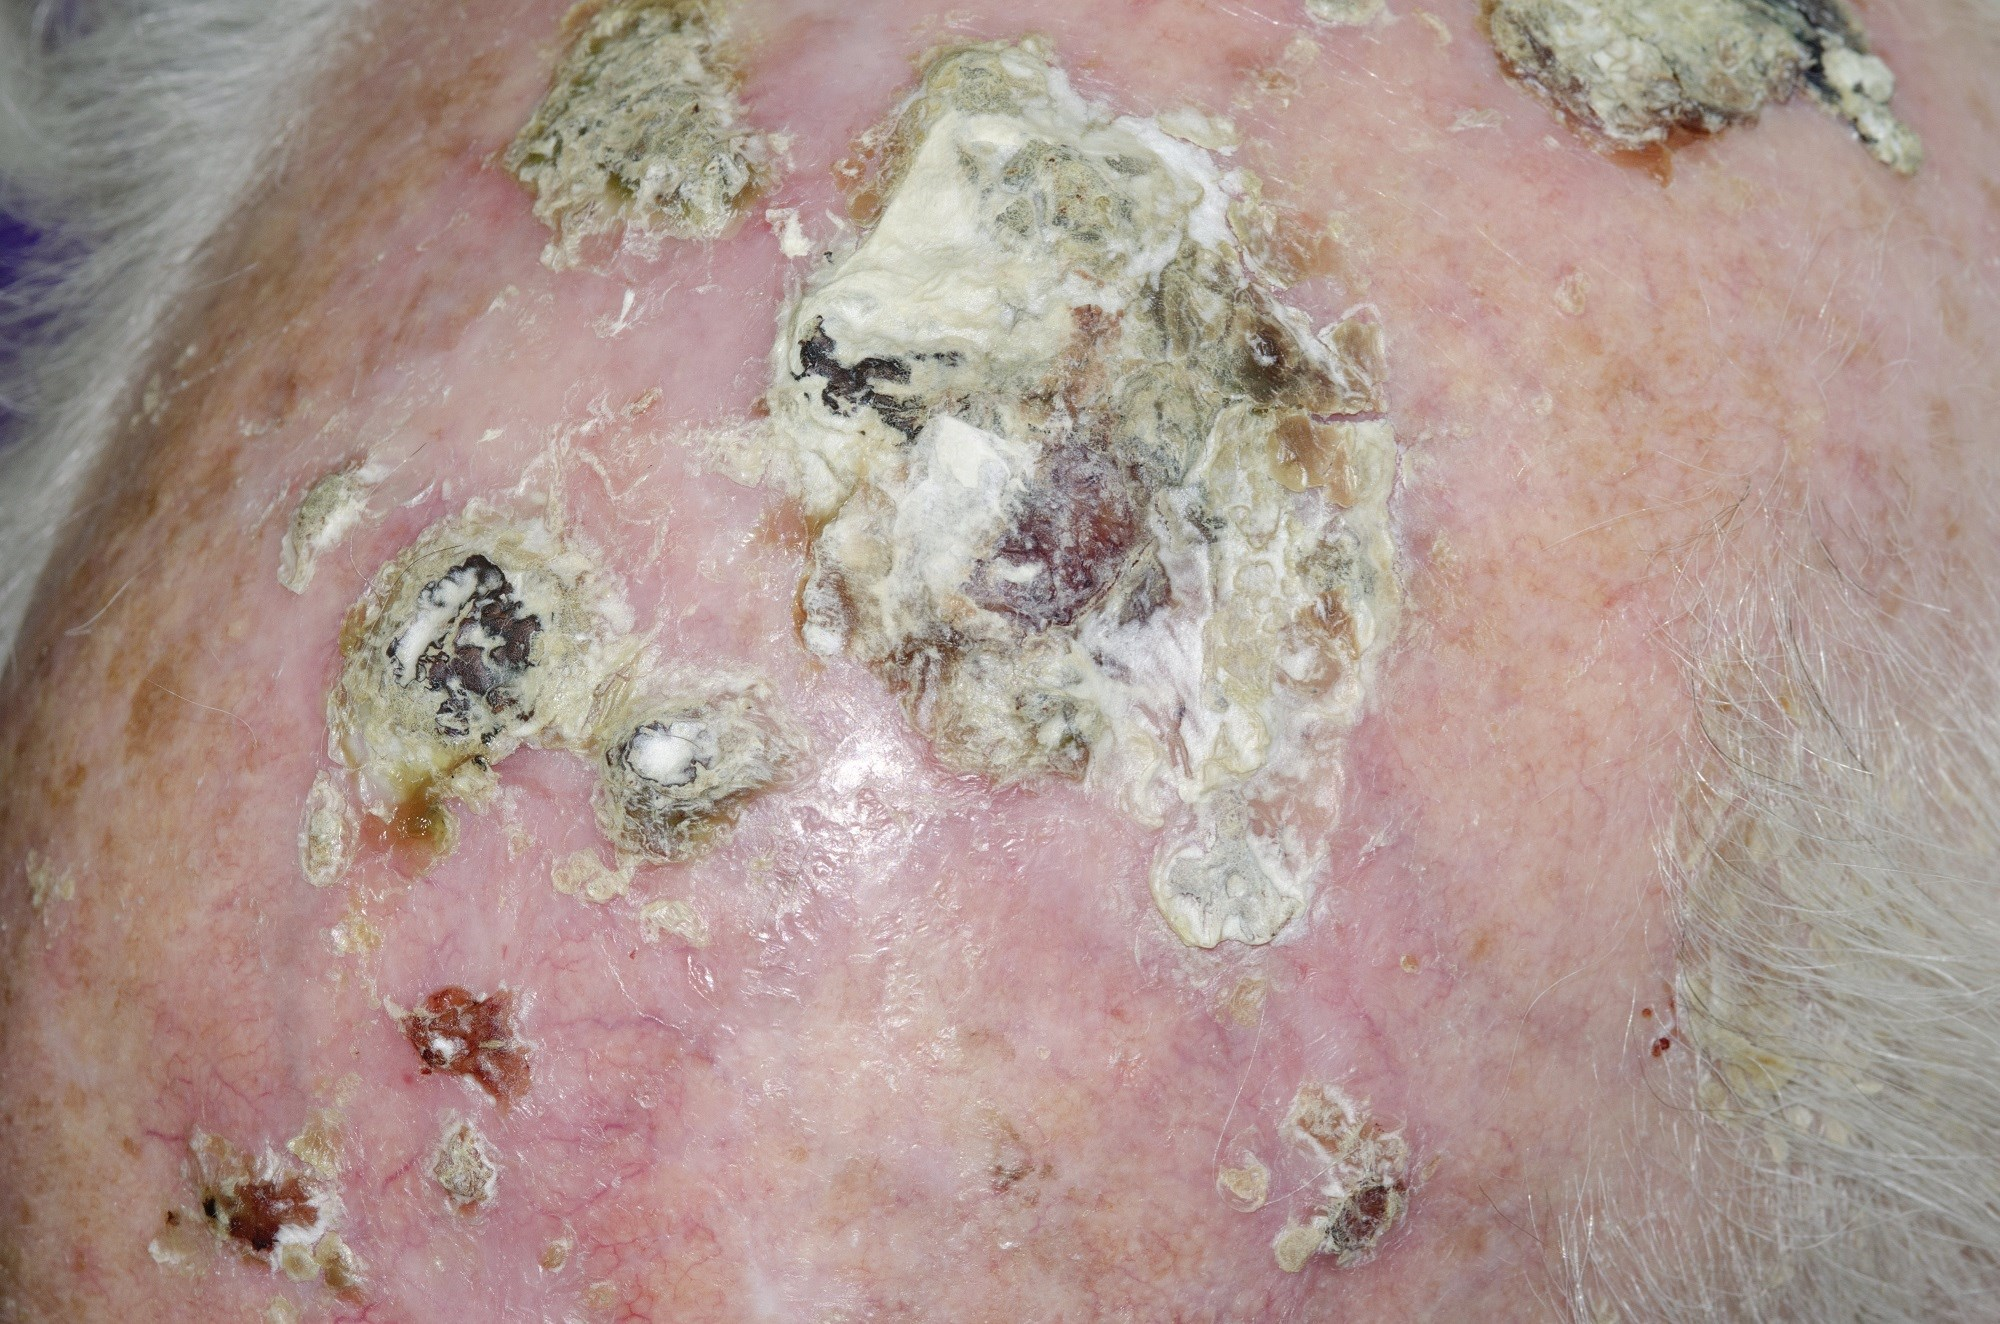 Physician Communication Linked to Improved Patient-Reported Outcomes in Actinic Keratosis